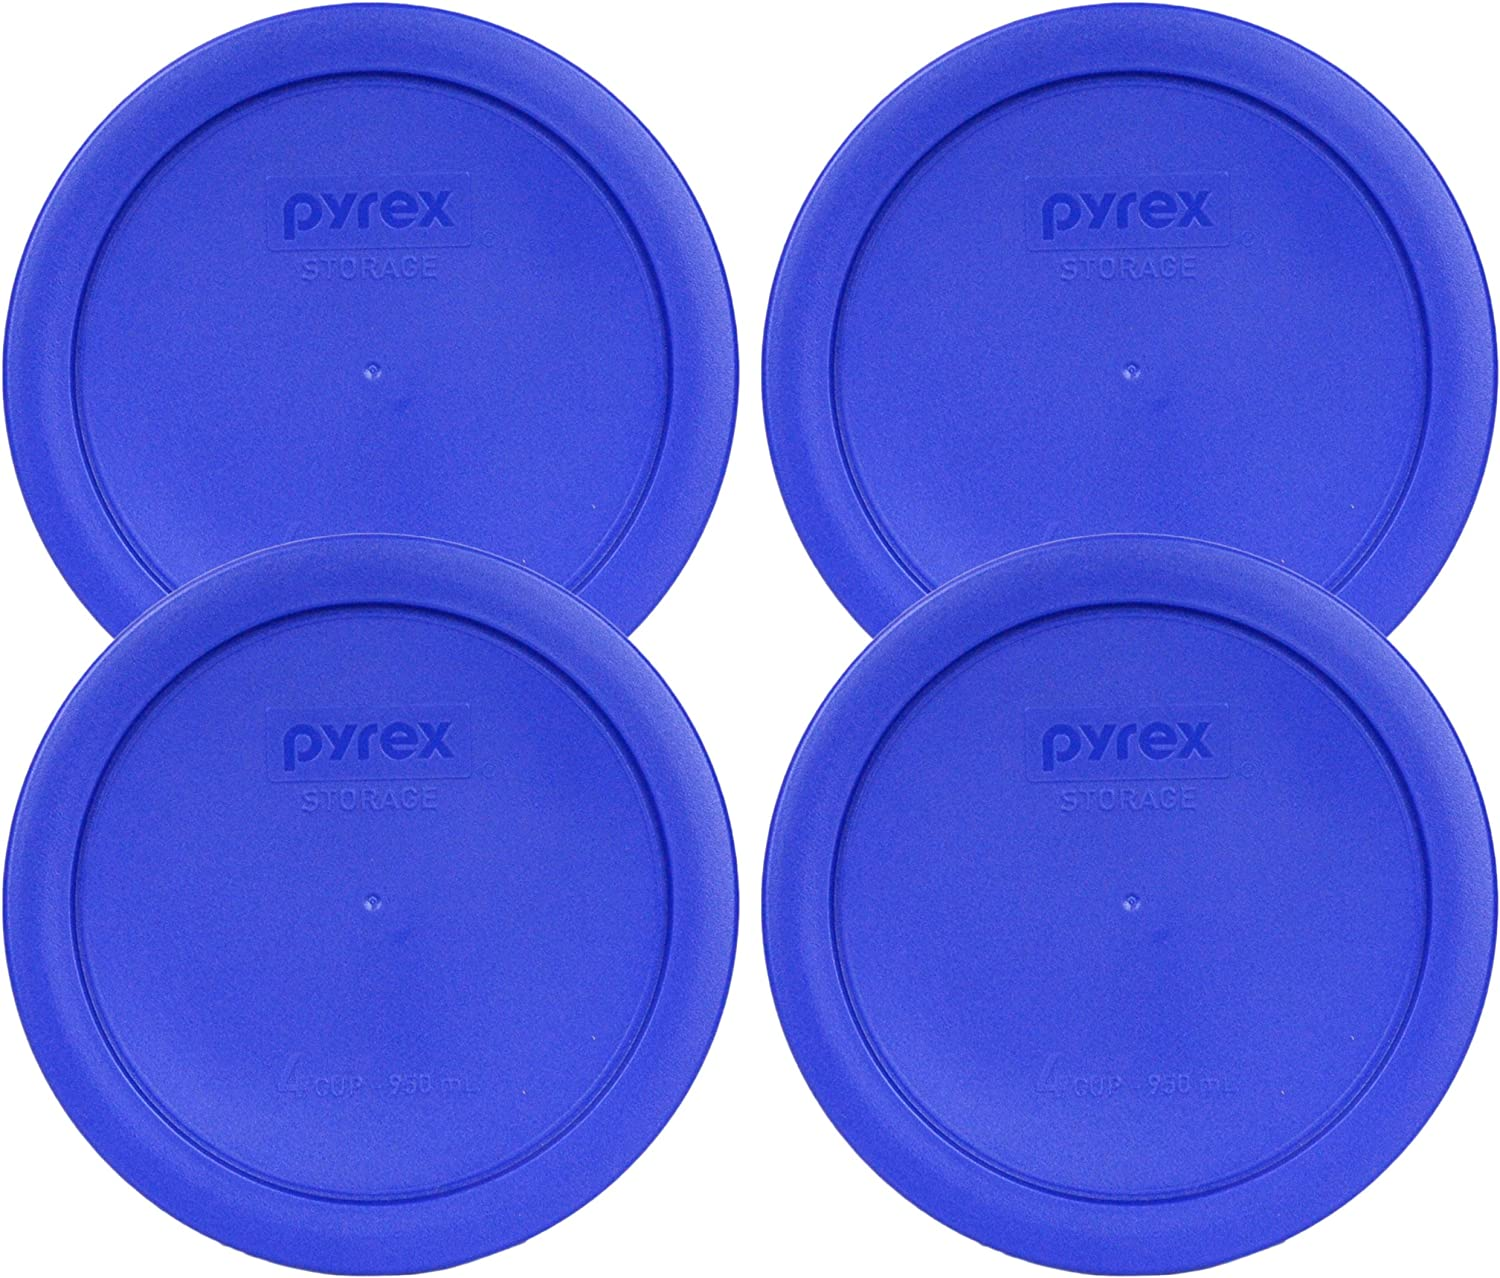 Pyrex 7201-PC Round 4 Cup Storage Lid for Glass Bowls (4, Light Blue)